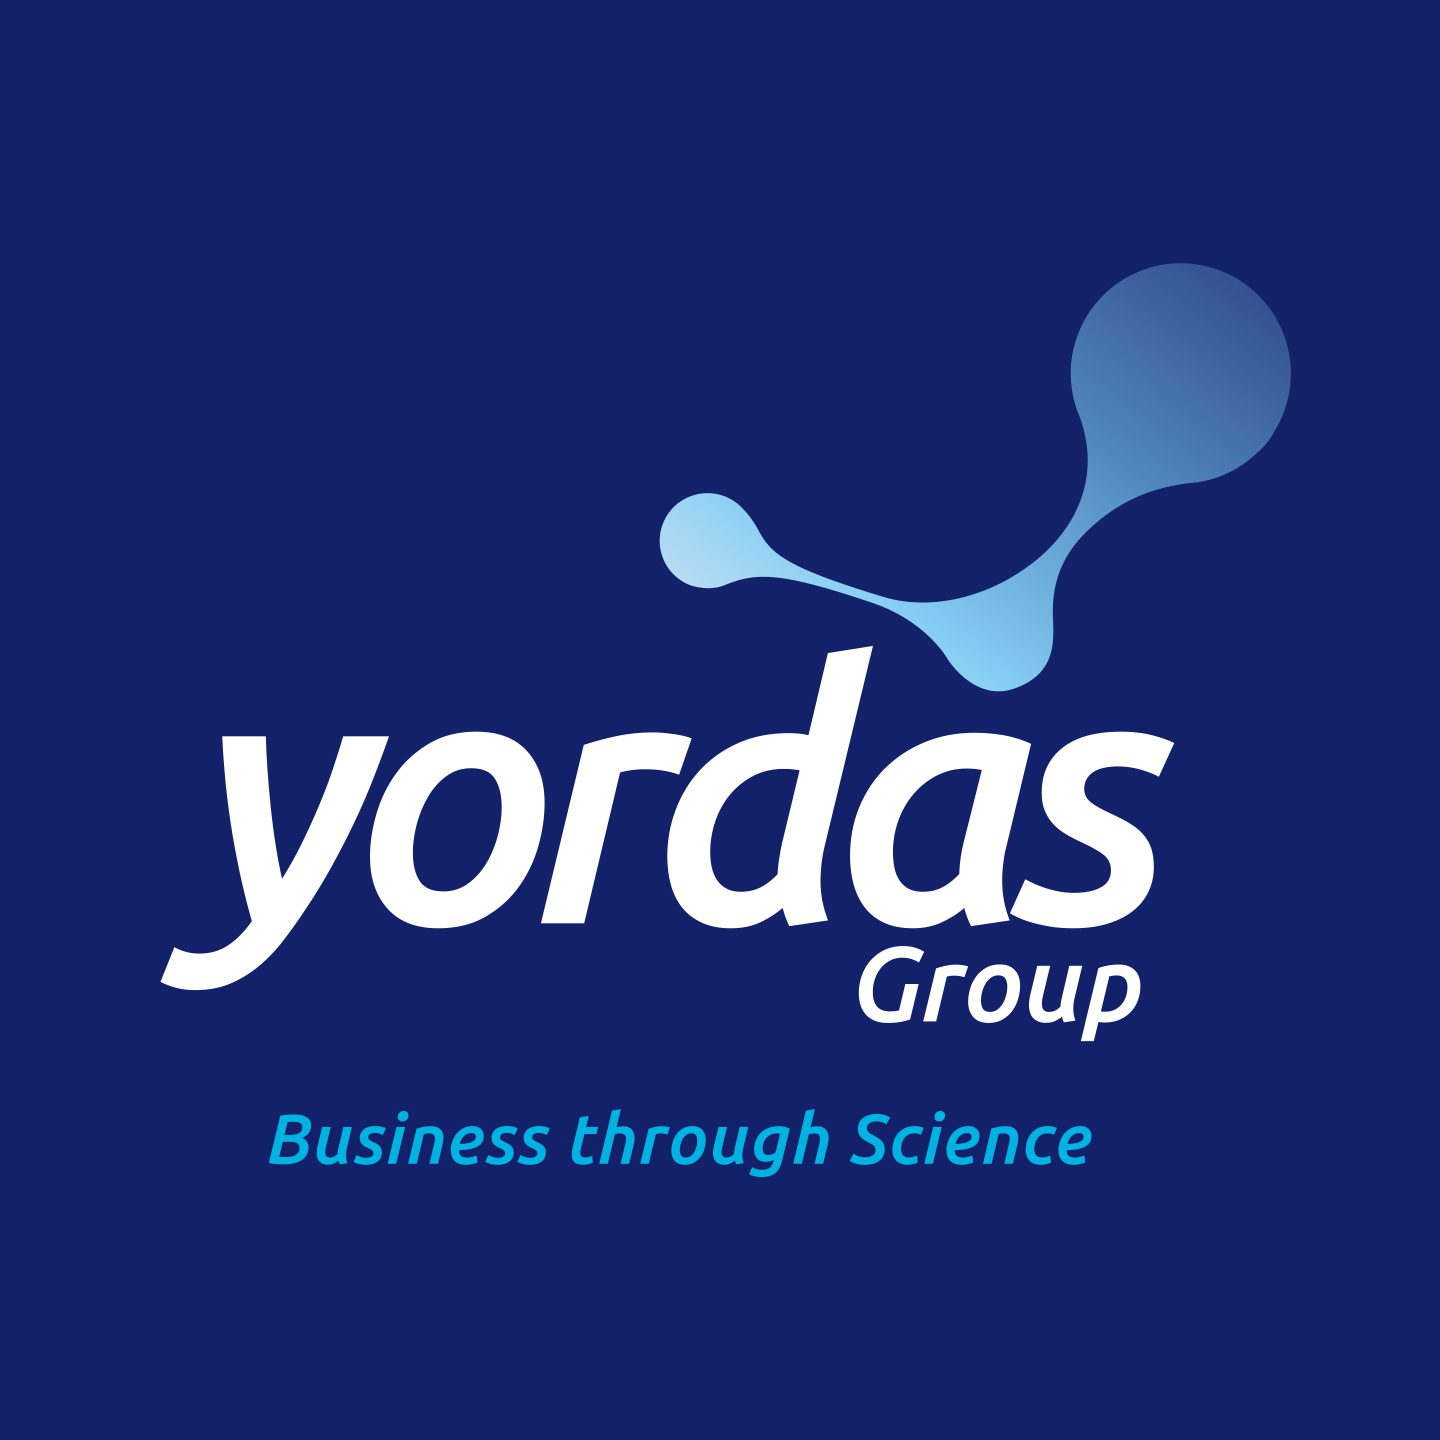 Yordas Group